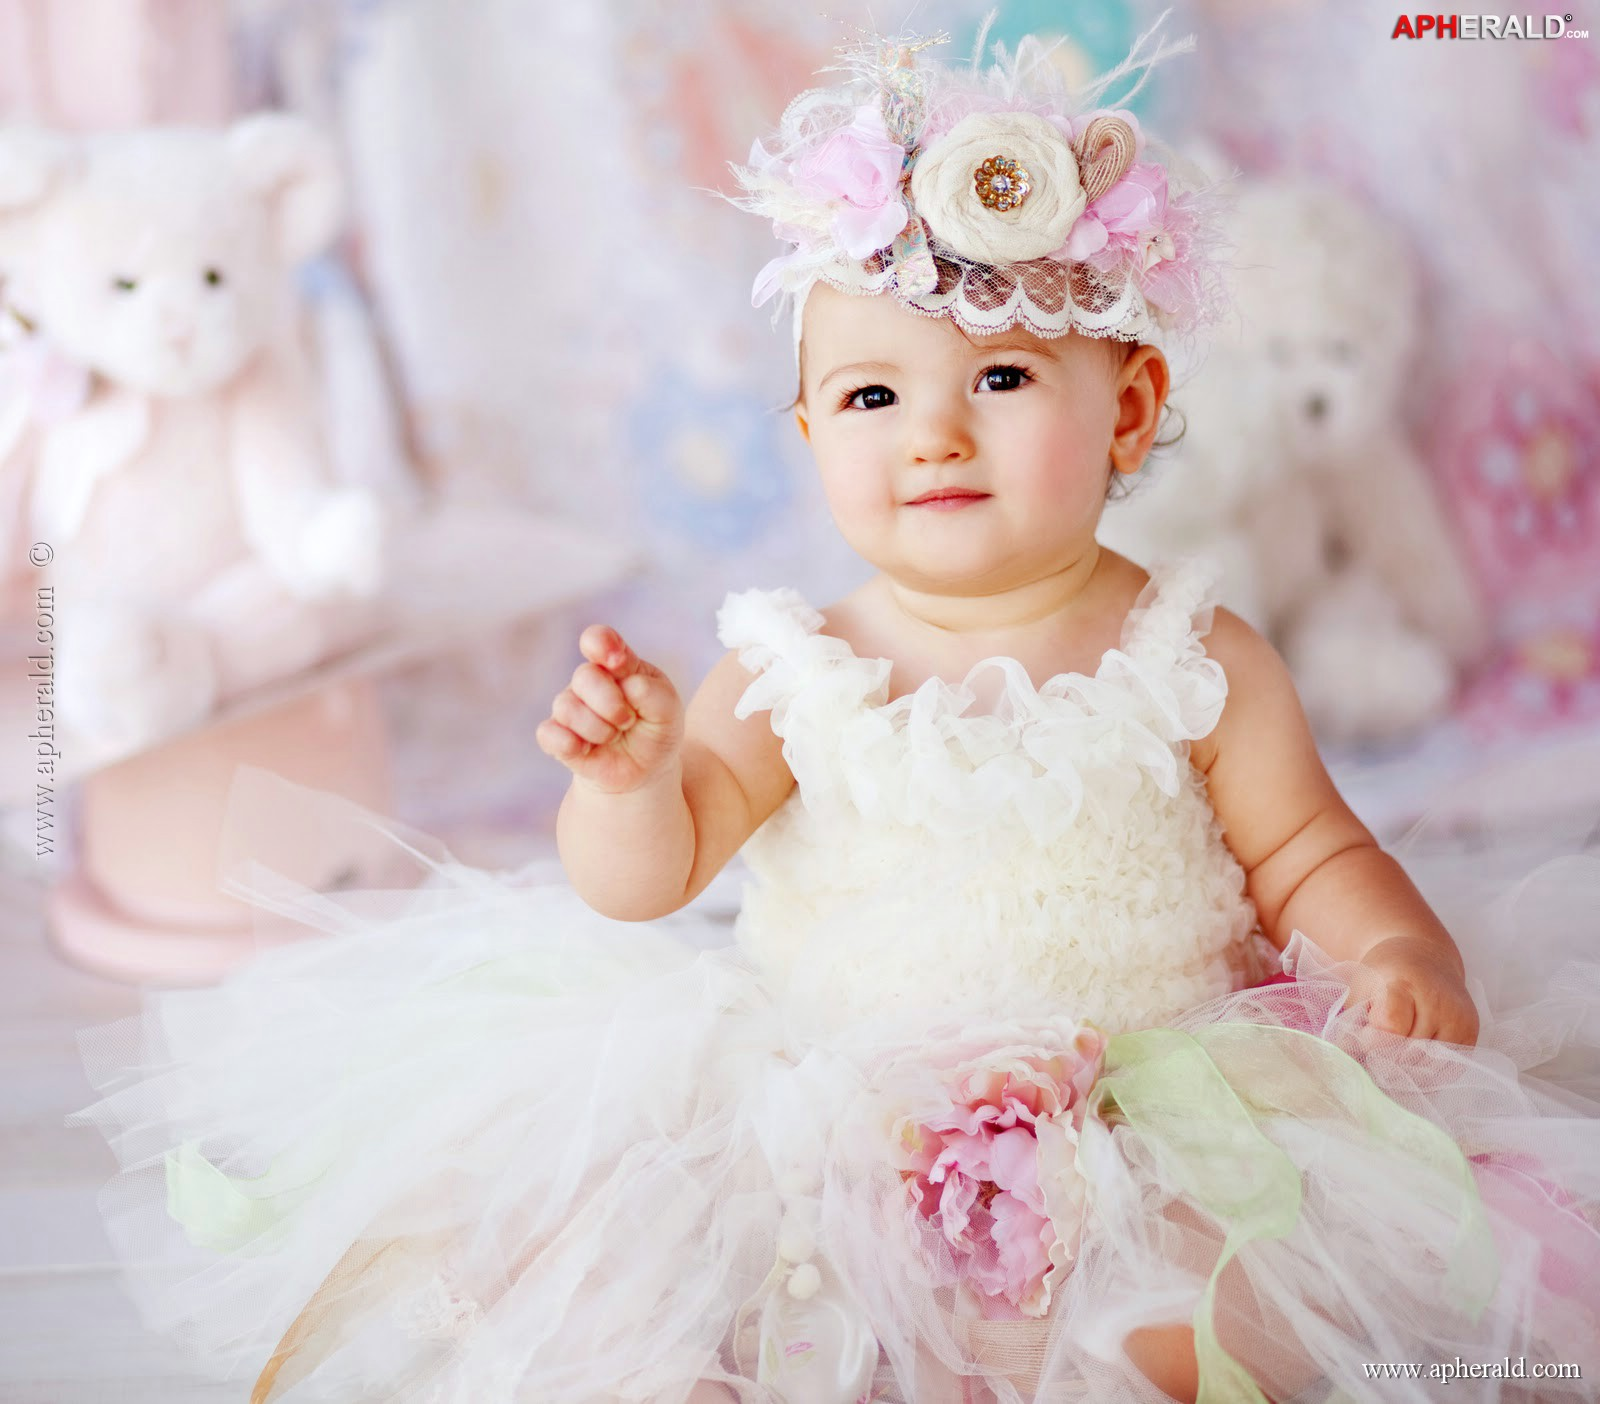 baby wallpaper and background image   1600x1404   id:505911